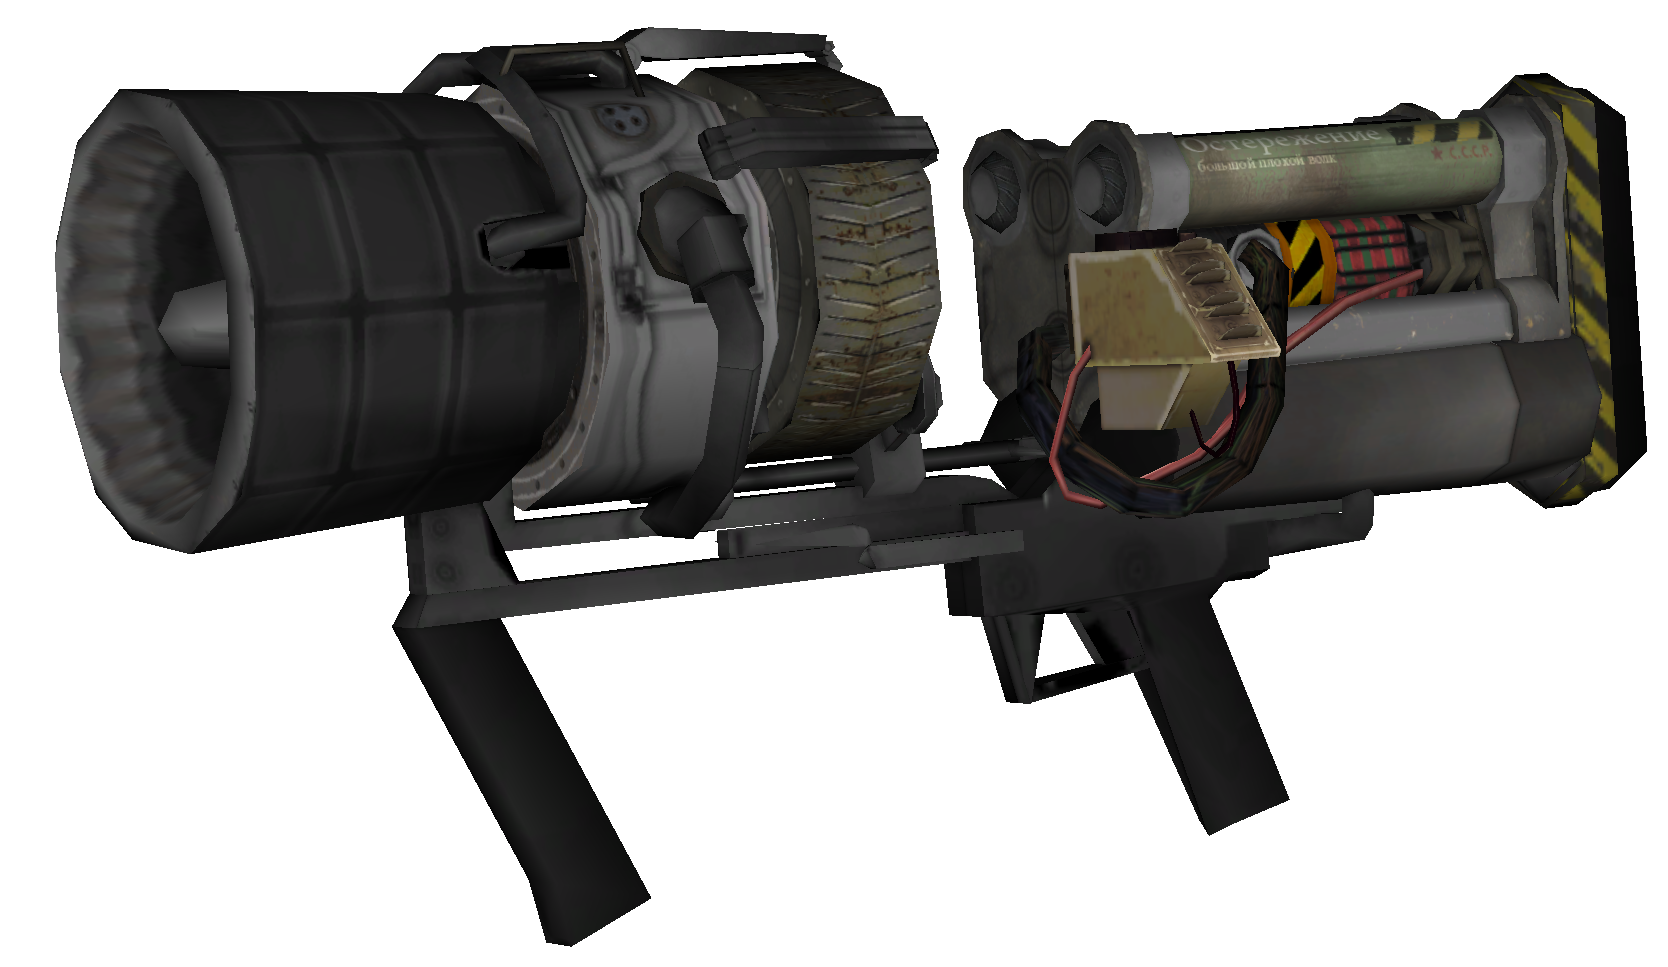 Thundergun Call Of Duty Wiki Fandom Powered By Wikia Mosin Nagant Parts Diagram Together With 35mm Camera On Canon